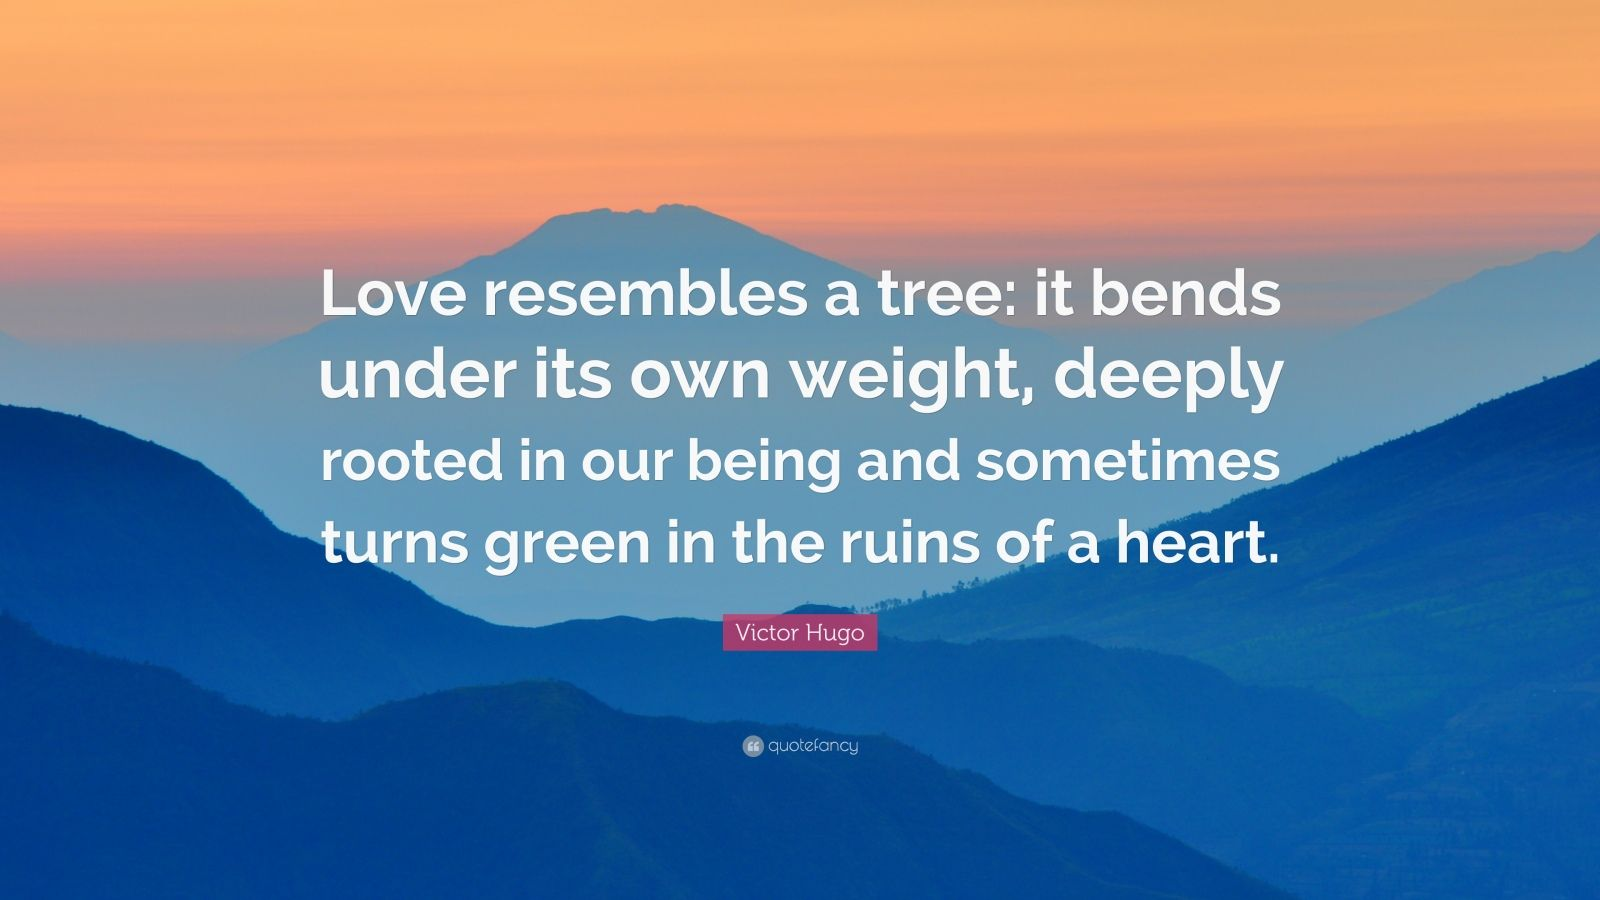 """Victor Hugo Quote: """"Love resembles a tree: it bends under its own weight, deeply rooted in our being and sometimes turns green in the ruins of a heart."""""""